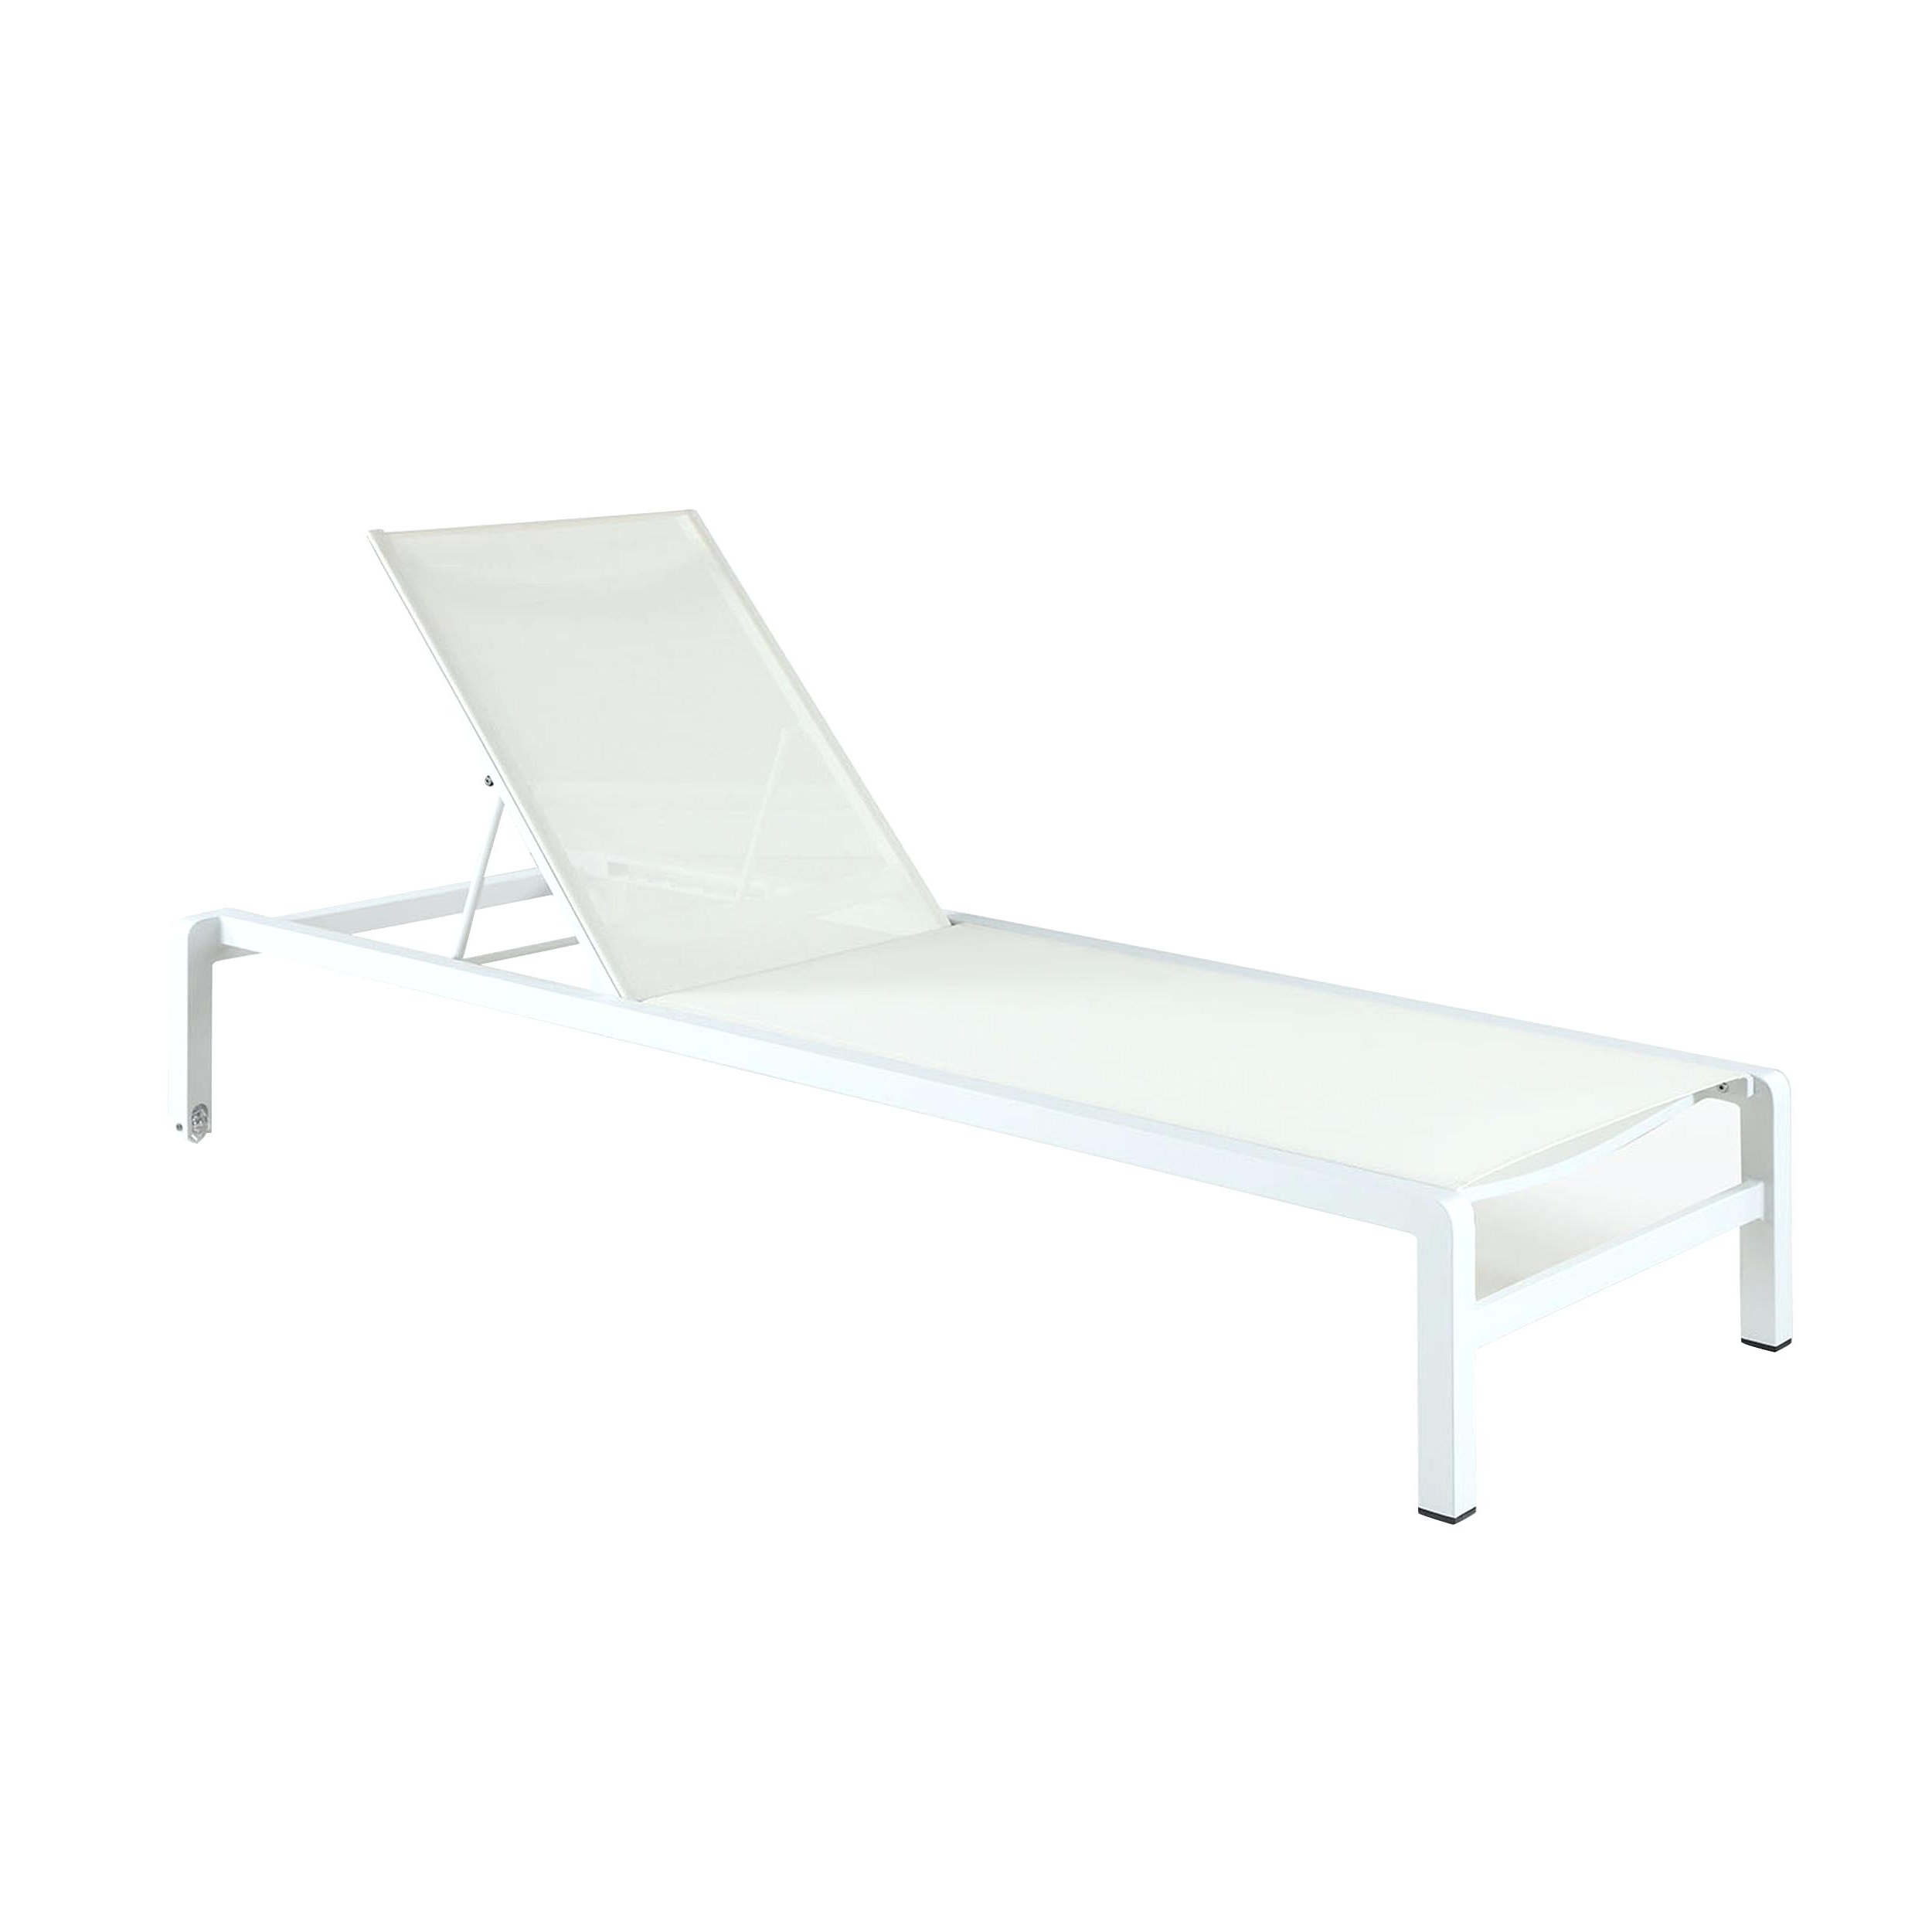 Cosco Outdoor Aluminum Chaise Lounge Chairs Throughout Preferred Delectable Aluminum Chaise Lounge Chair Furniture Outdoor (View 10 of 25)